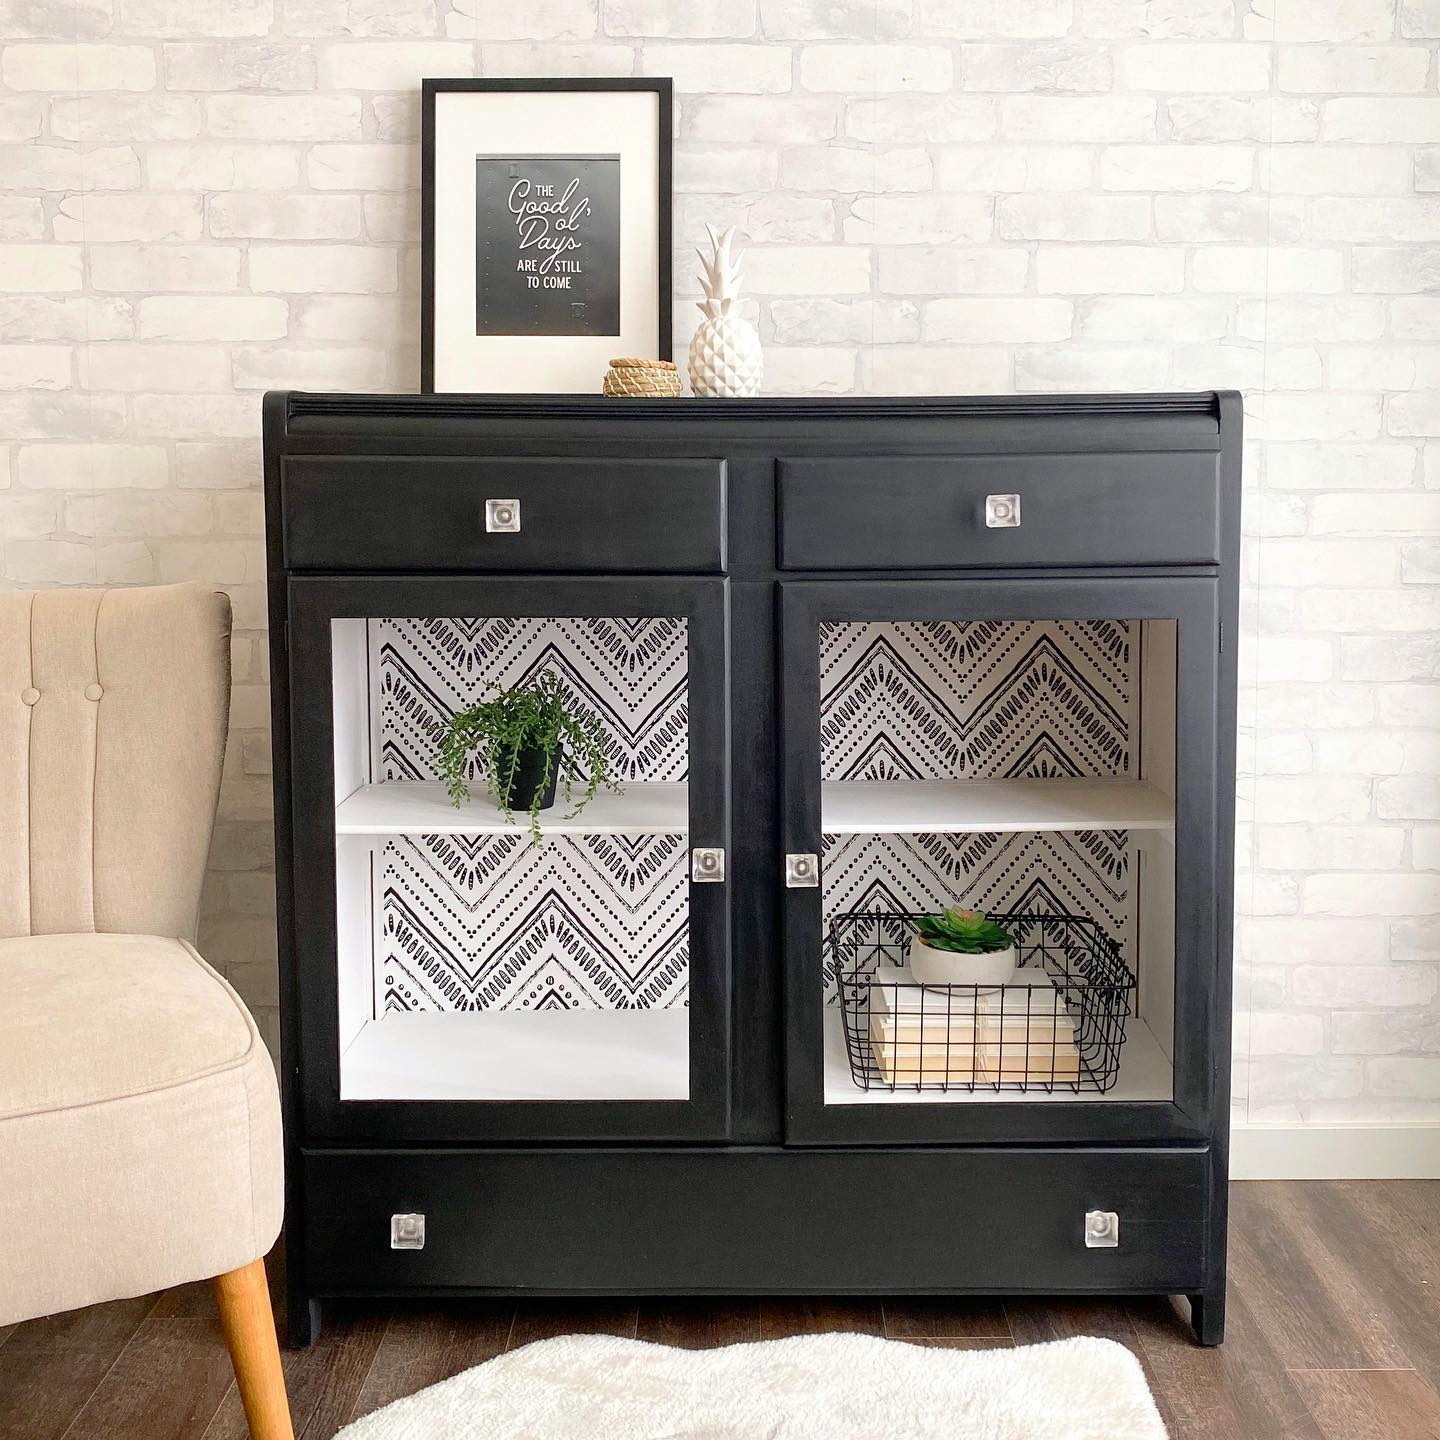 Storage Cabinet/Bookshelf with Drawers in Liquorice with Decorative Wallpaper